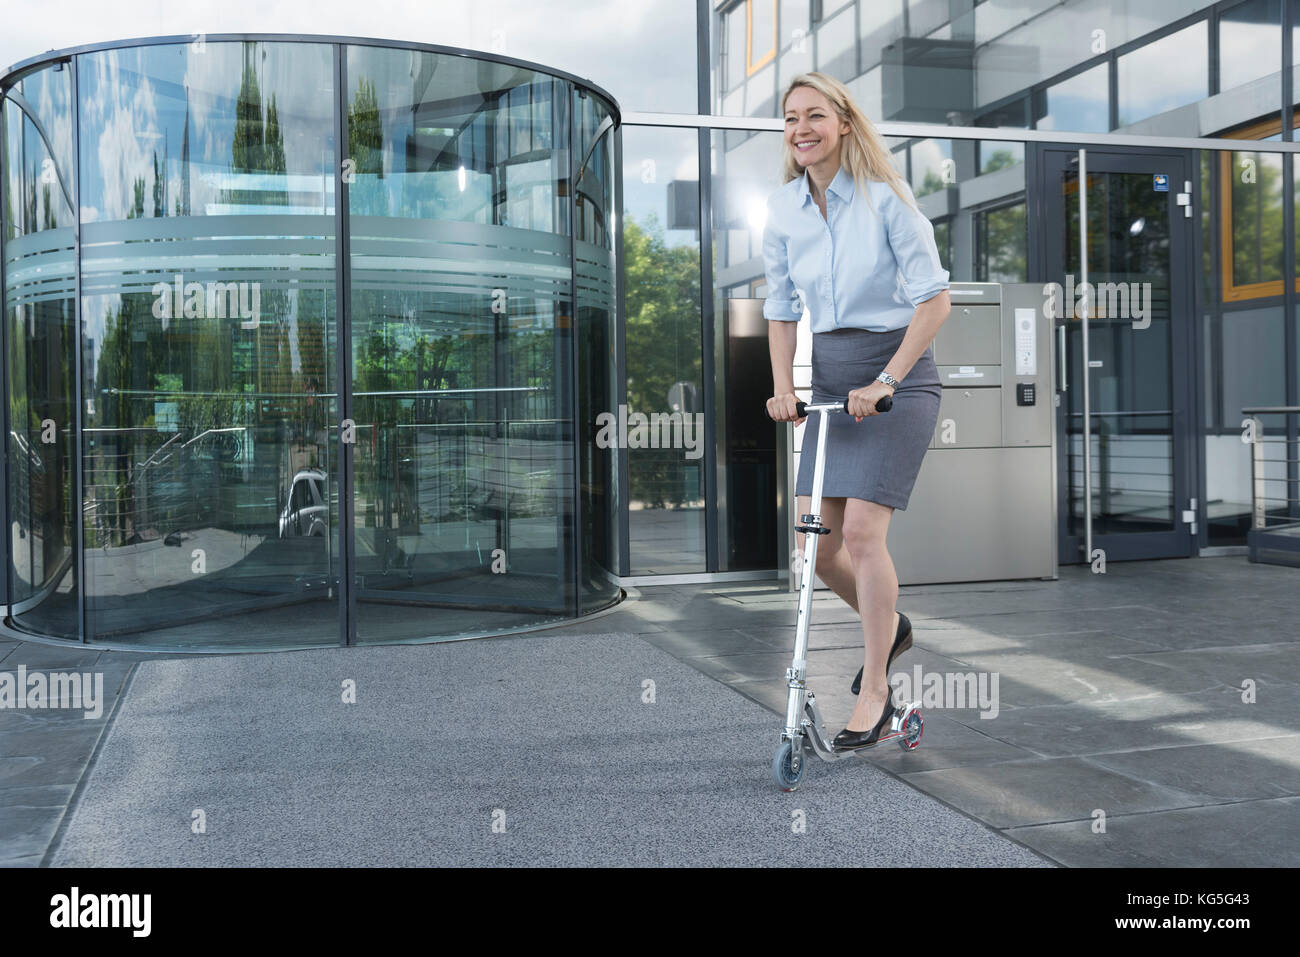 blond businesswoman with Scooter in front of entrance of an office building - Stock Image